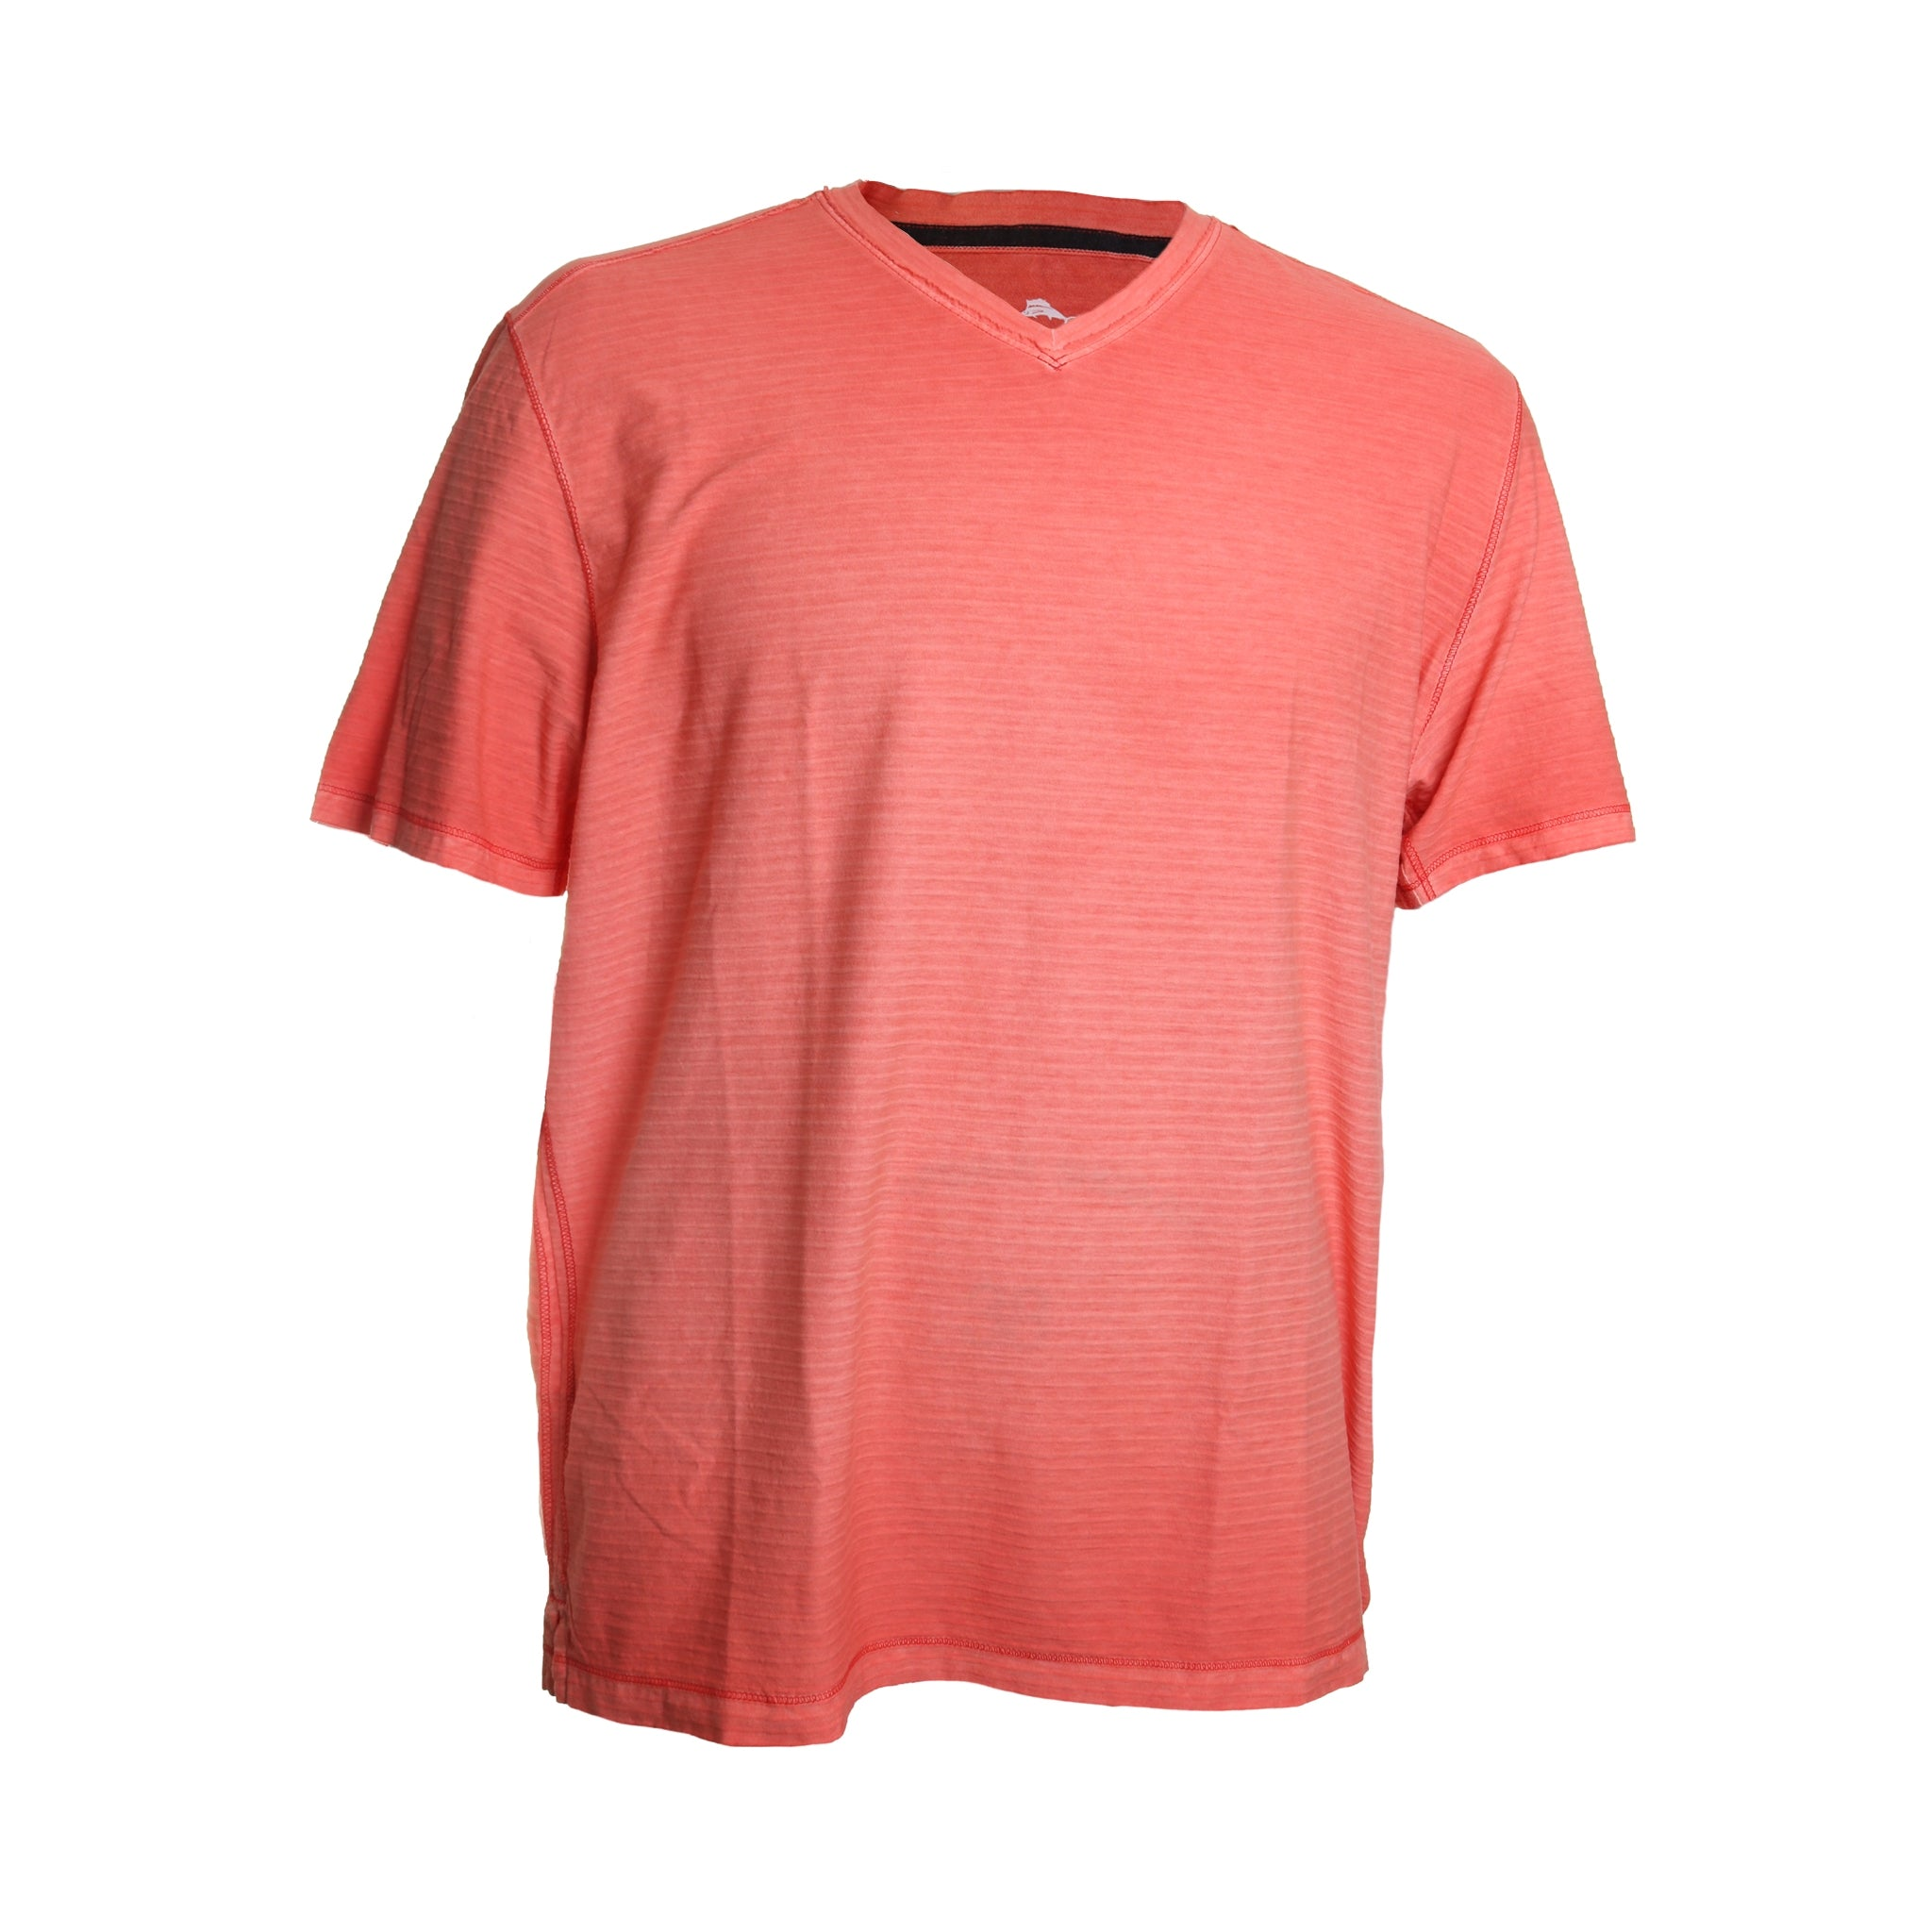 Tommy Bahama Cirrus Coast Short Sleeve V Neck Tee Shirt in Mango Tango